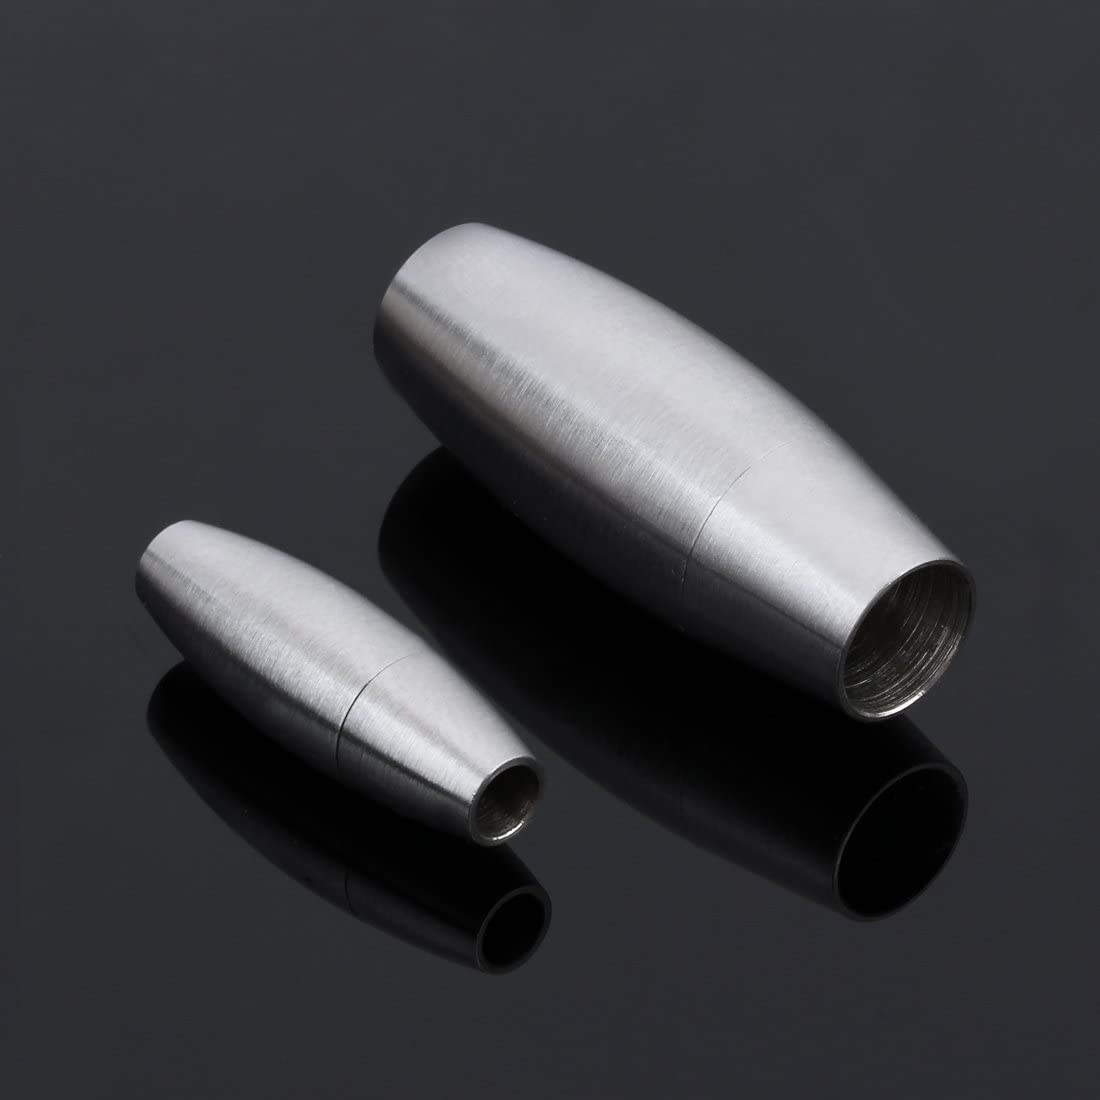 Linsoir Beads Silver Stainless Steel Matt Magnetic Clasps for 3mm Leather Cord Tube Clasp 2 Sets